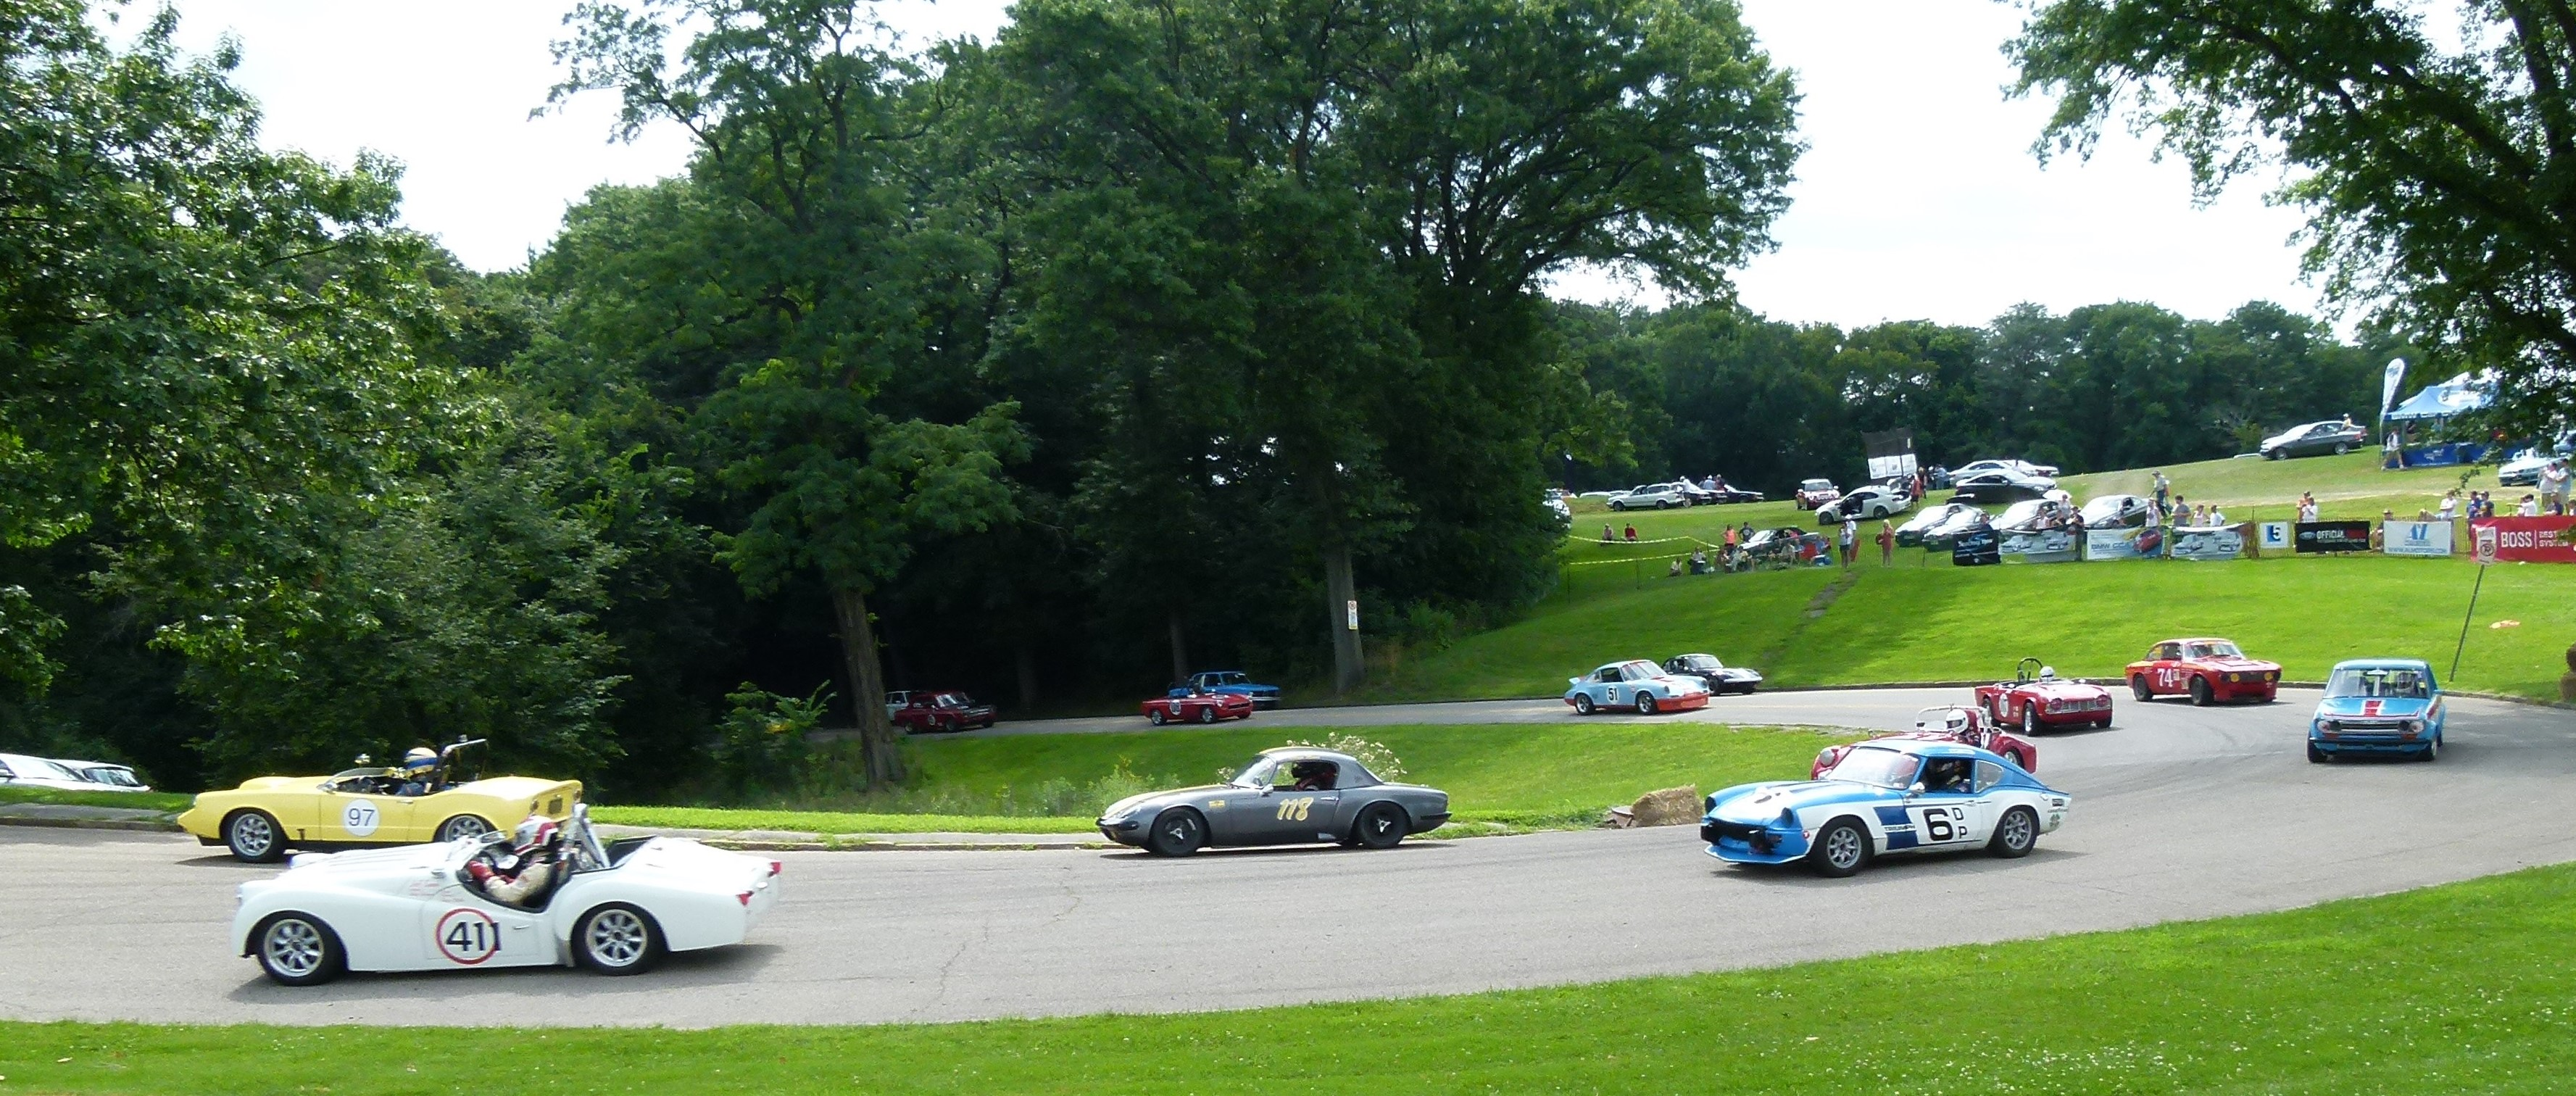 The 97 and 41 cars emerge from the sharp curve.